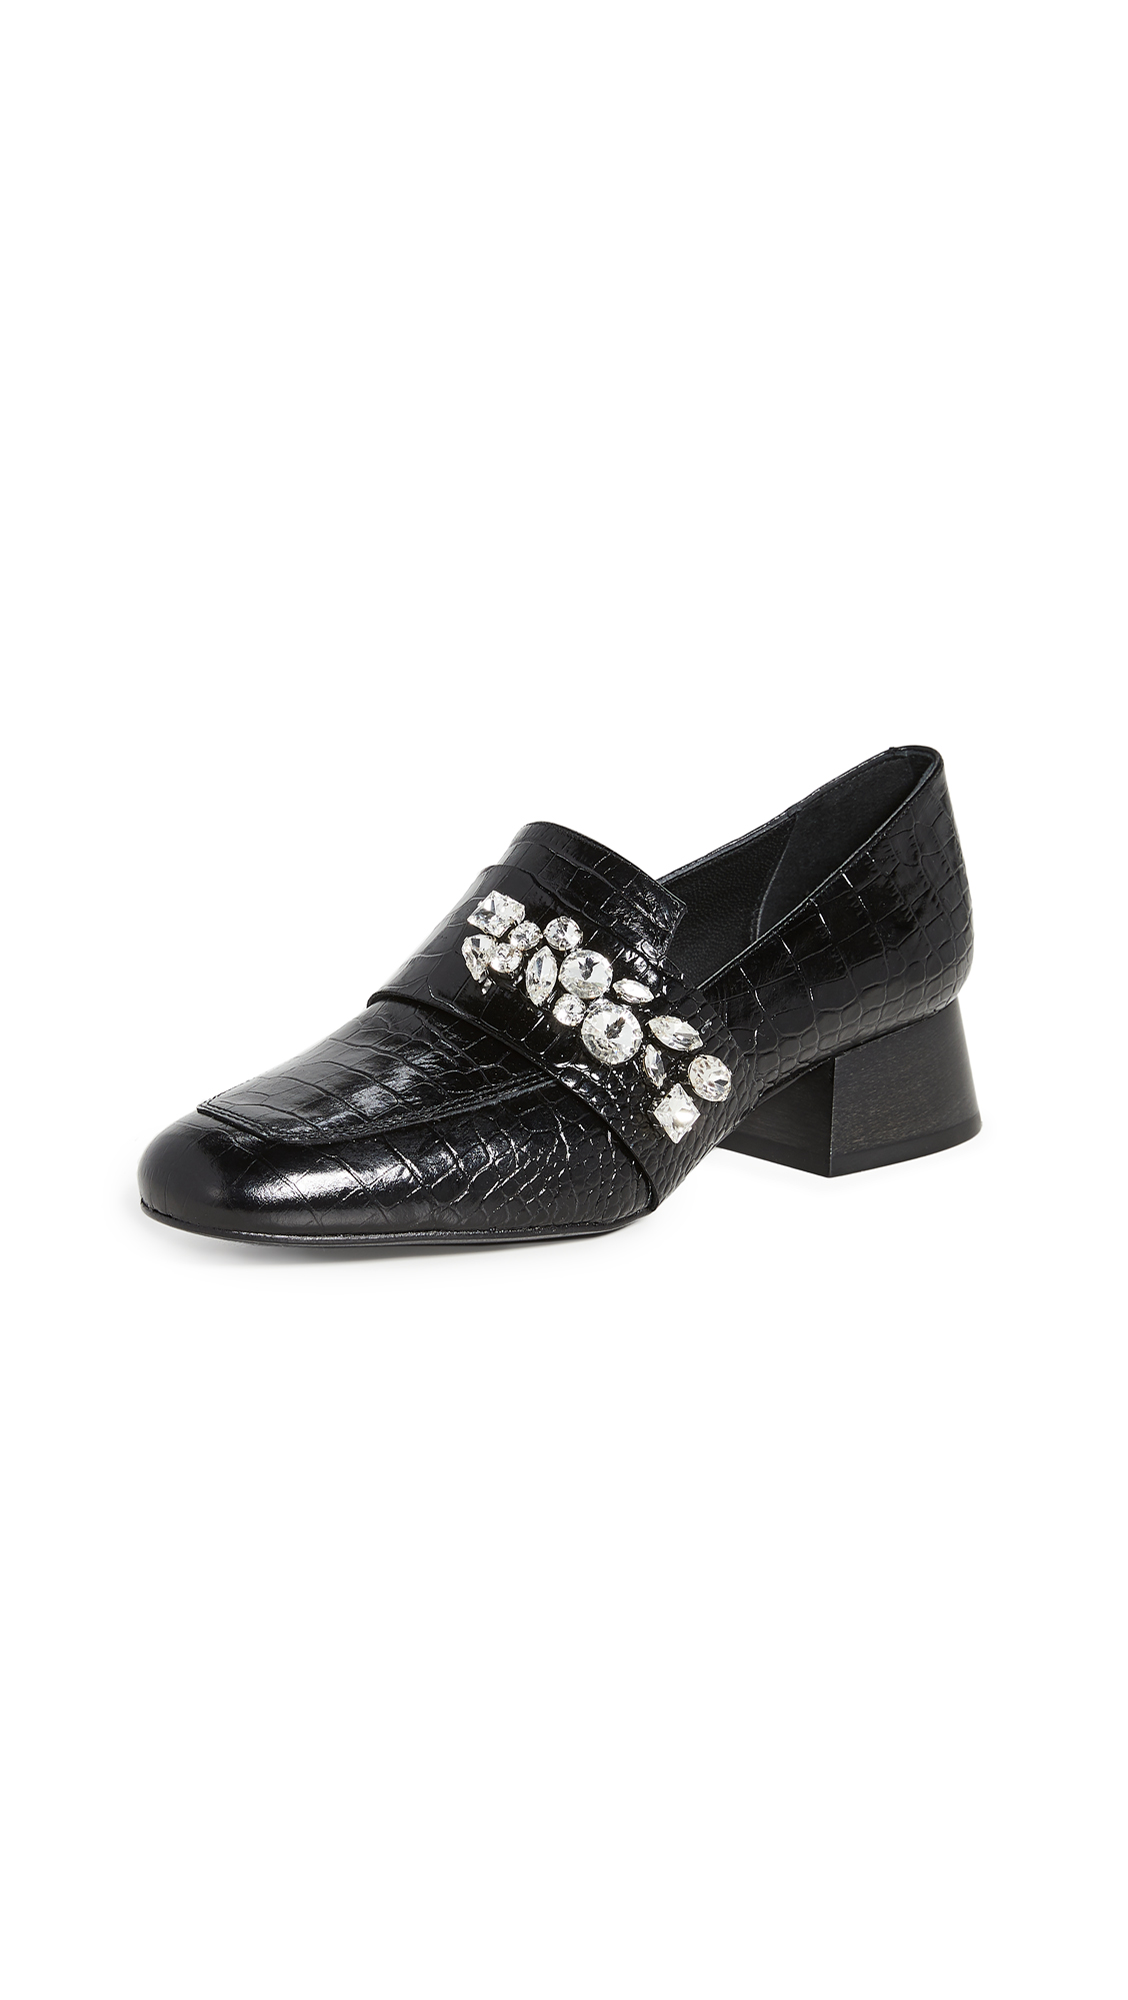 Freda Salvador Blossom Jewels Heeled Loafers - 30% Off Sale